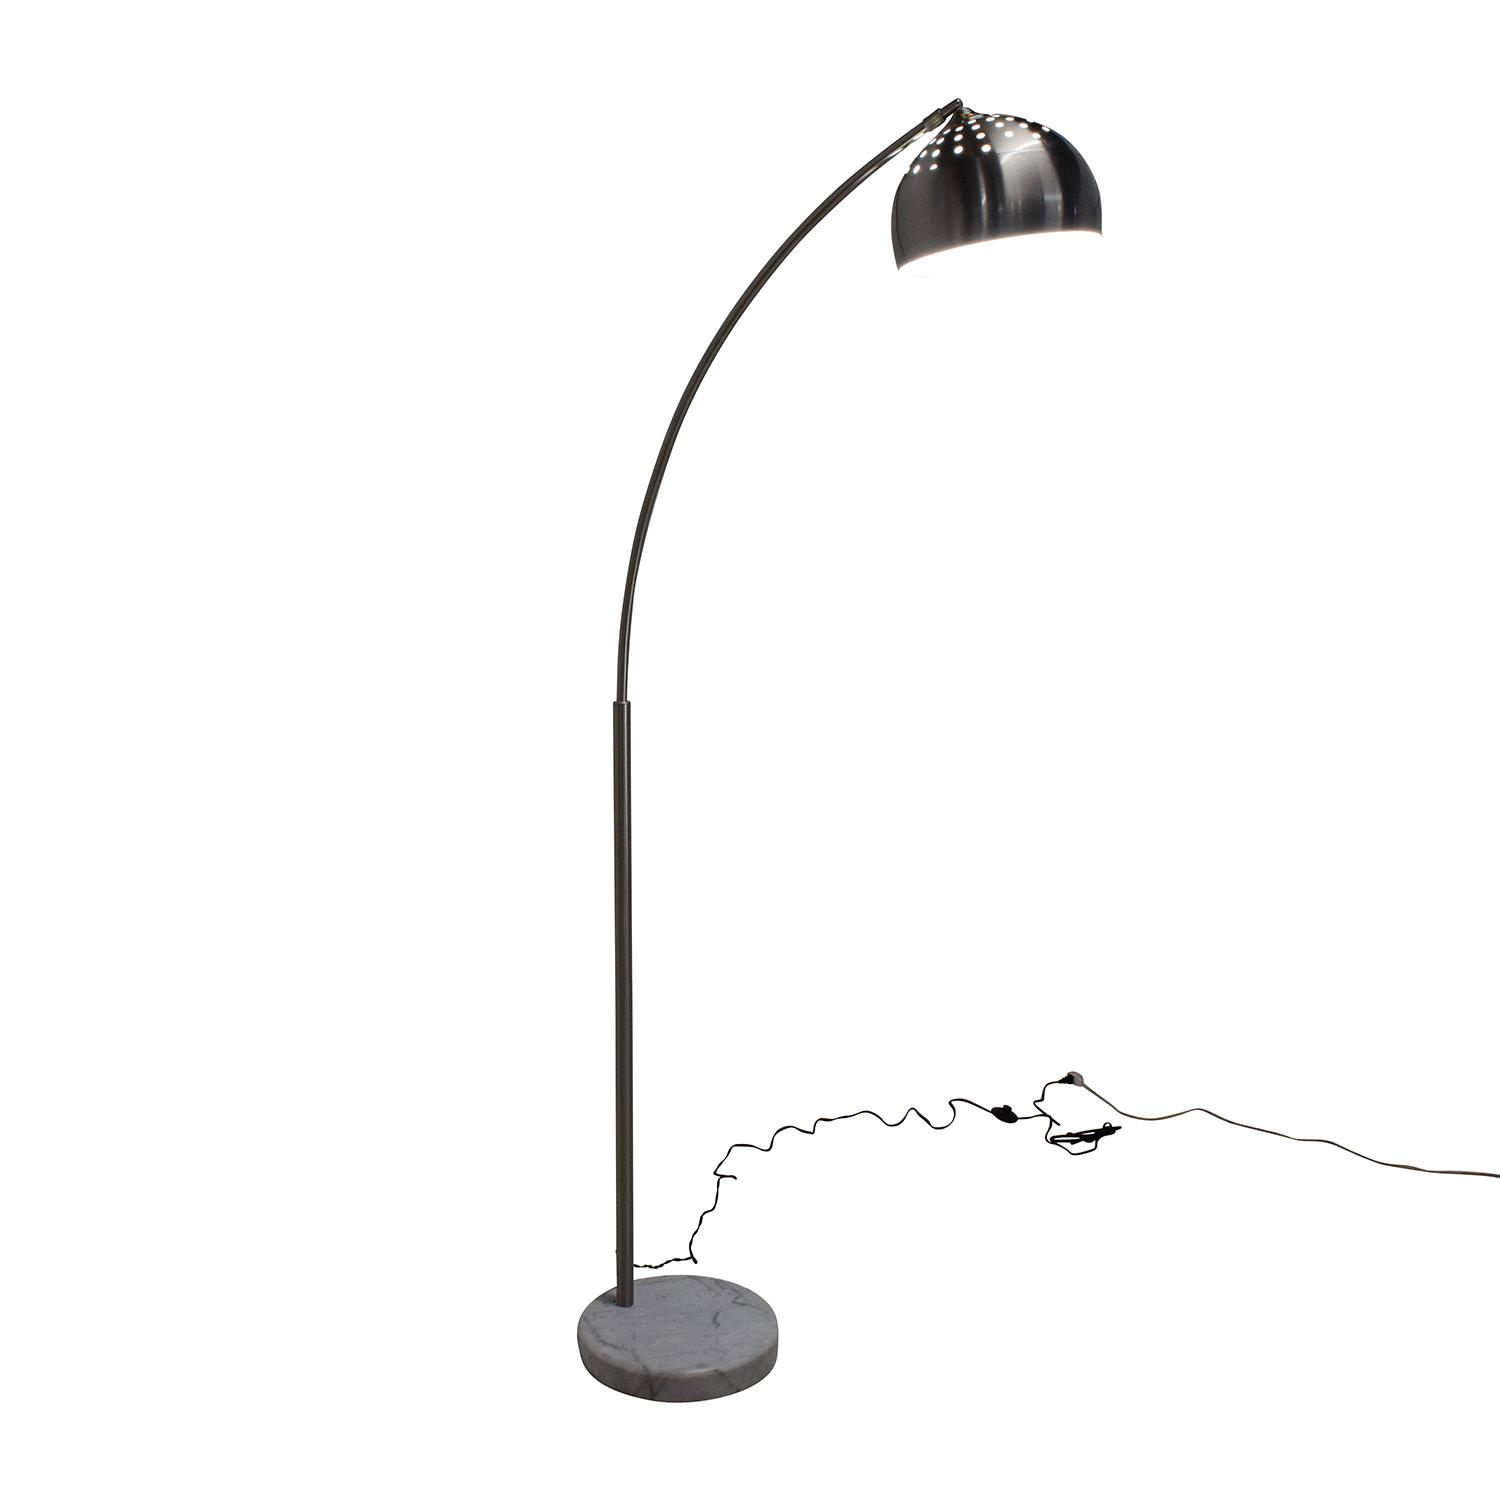 Overstock Overstock Arch 1 Silver Floor Lamp for sale